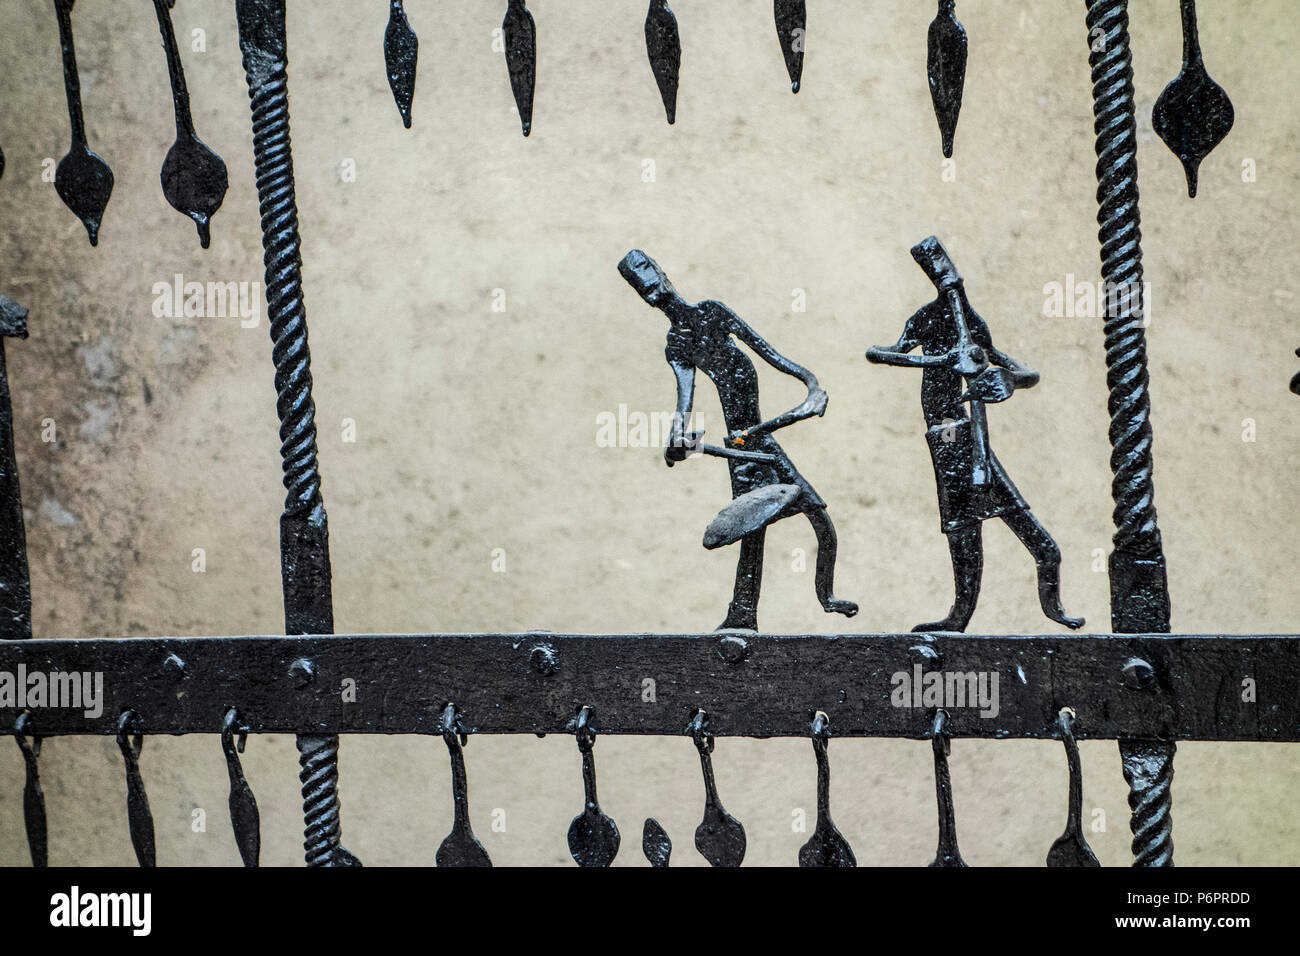 Exhibit of a wrought iron gate or fence from Bastar, Chhattisgarh with musician dancing figures in the National Crafts Museum, New Delhi, India - Stock Image